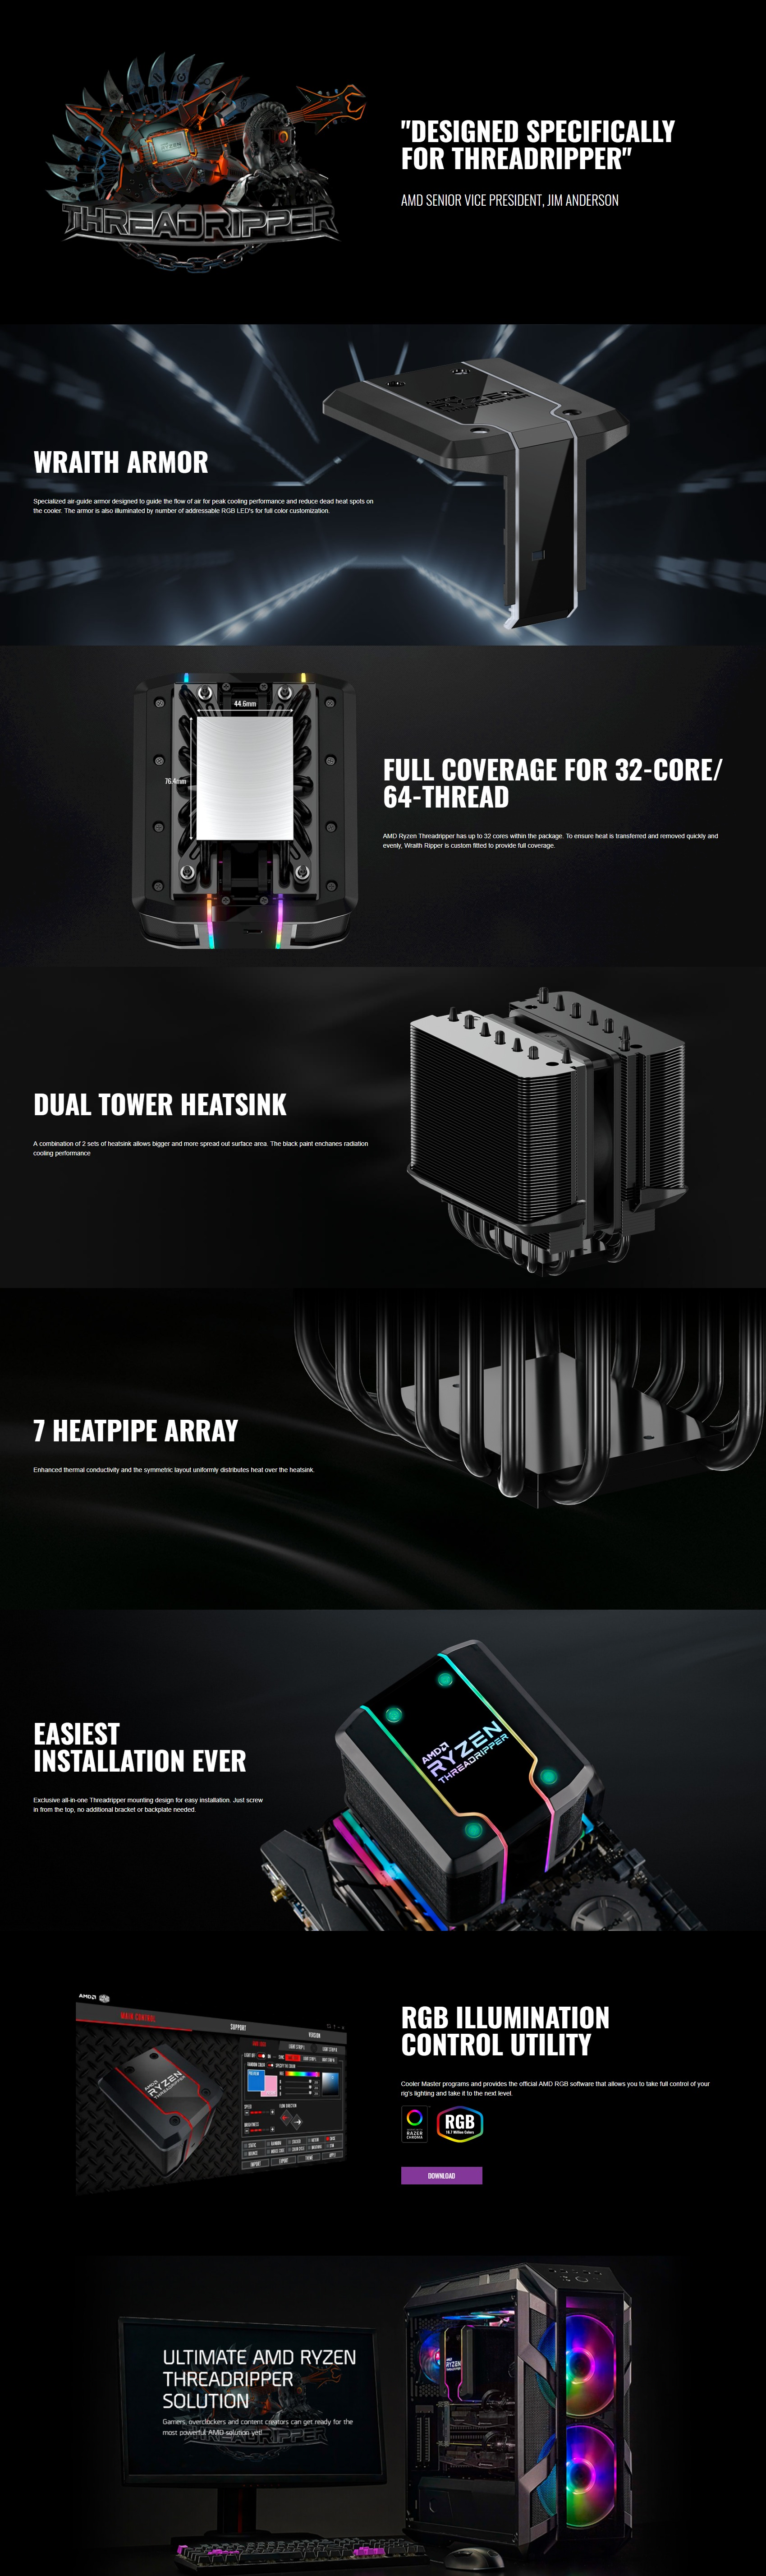 A large marketing image providing additional information about the product Cooler Master Wraith Ripper Addressable RGB AMD TR4 CPU Cooler - Additional alt info not provided